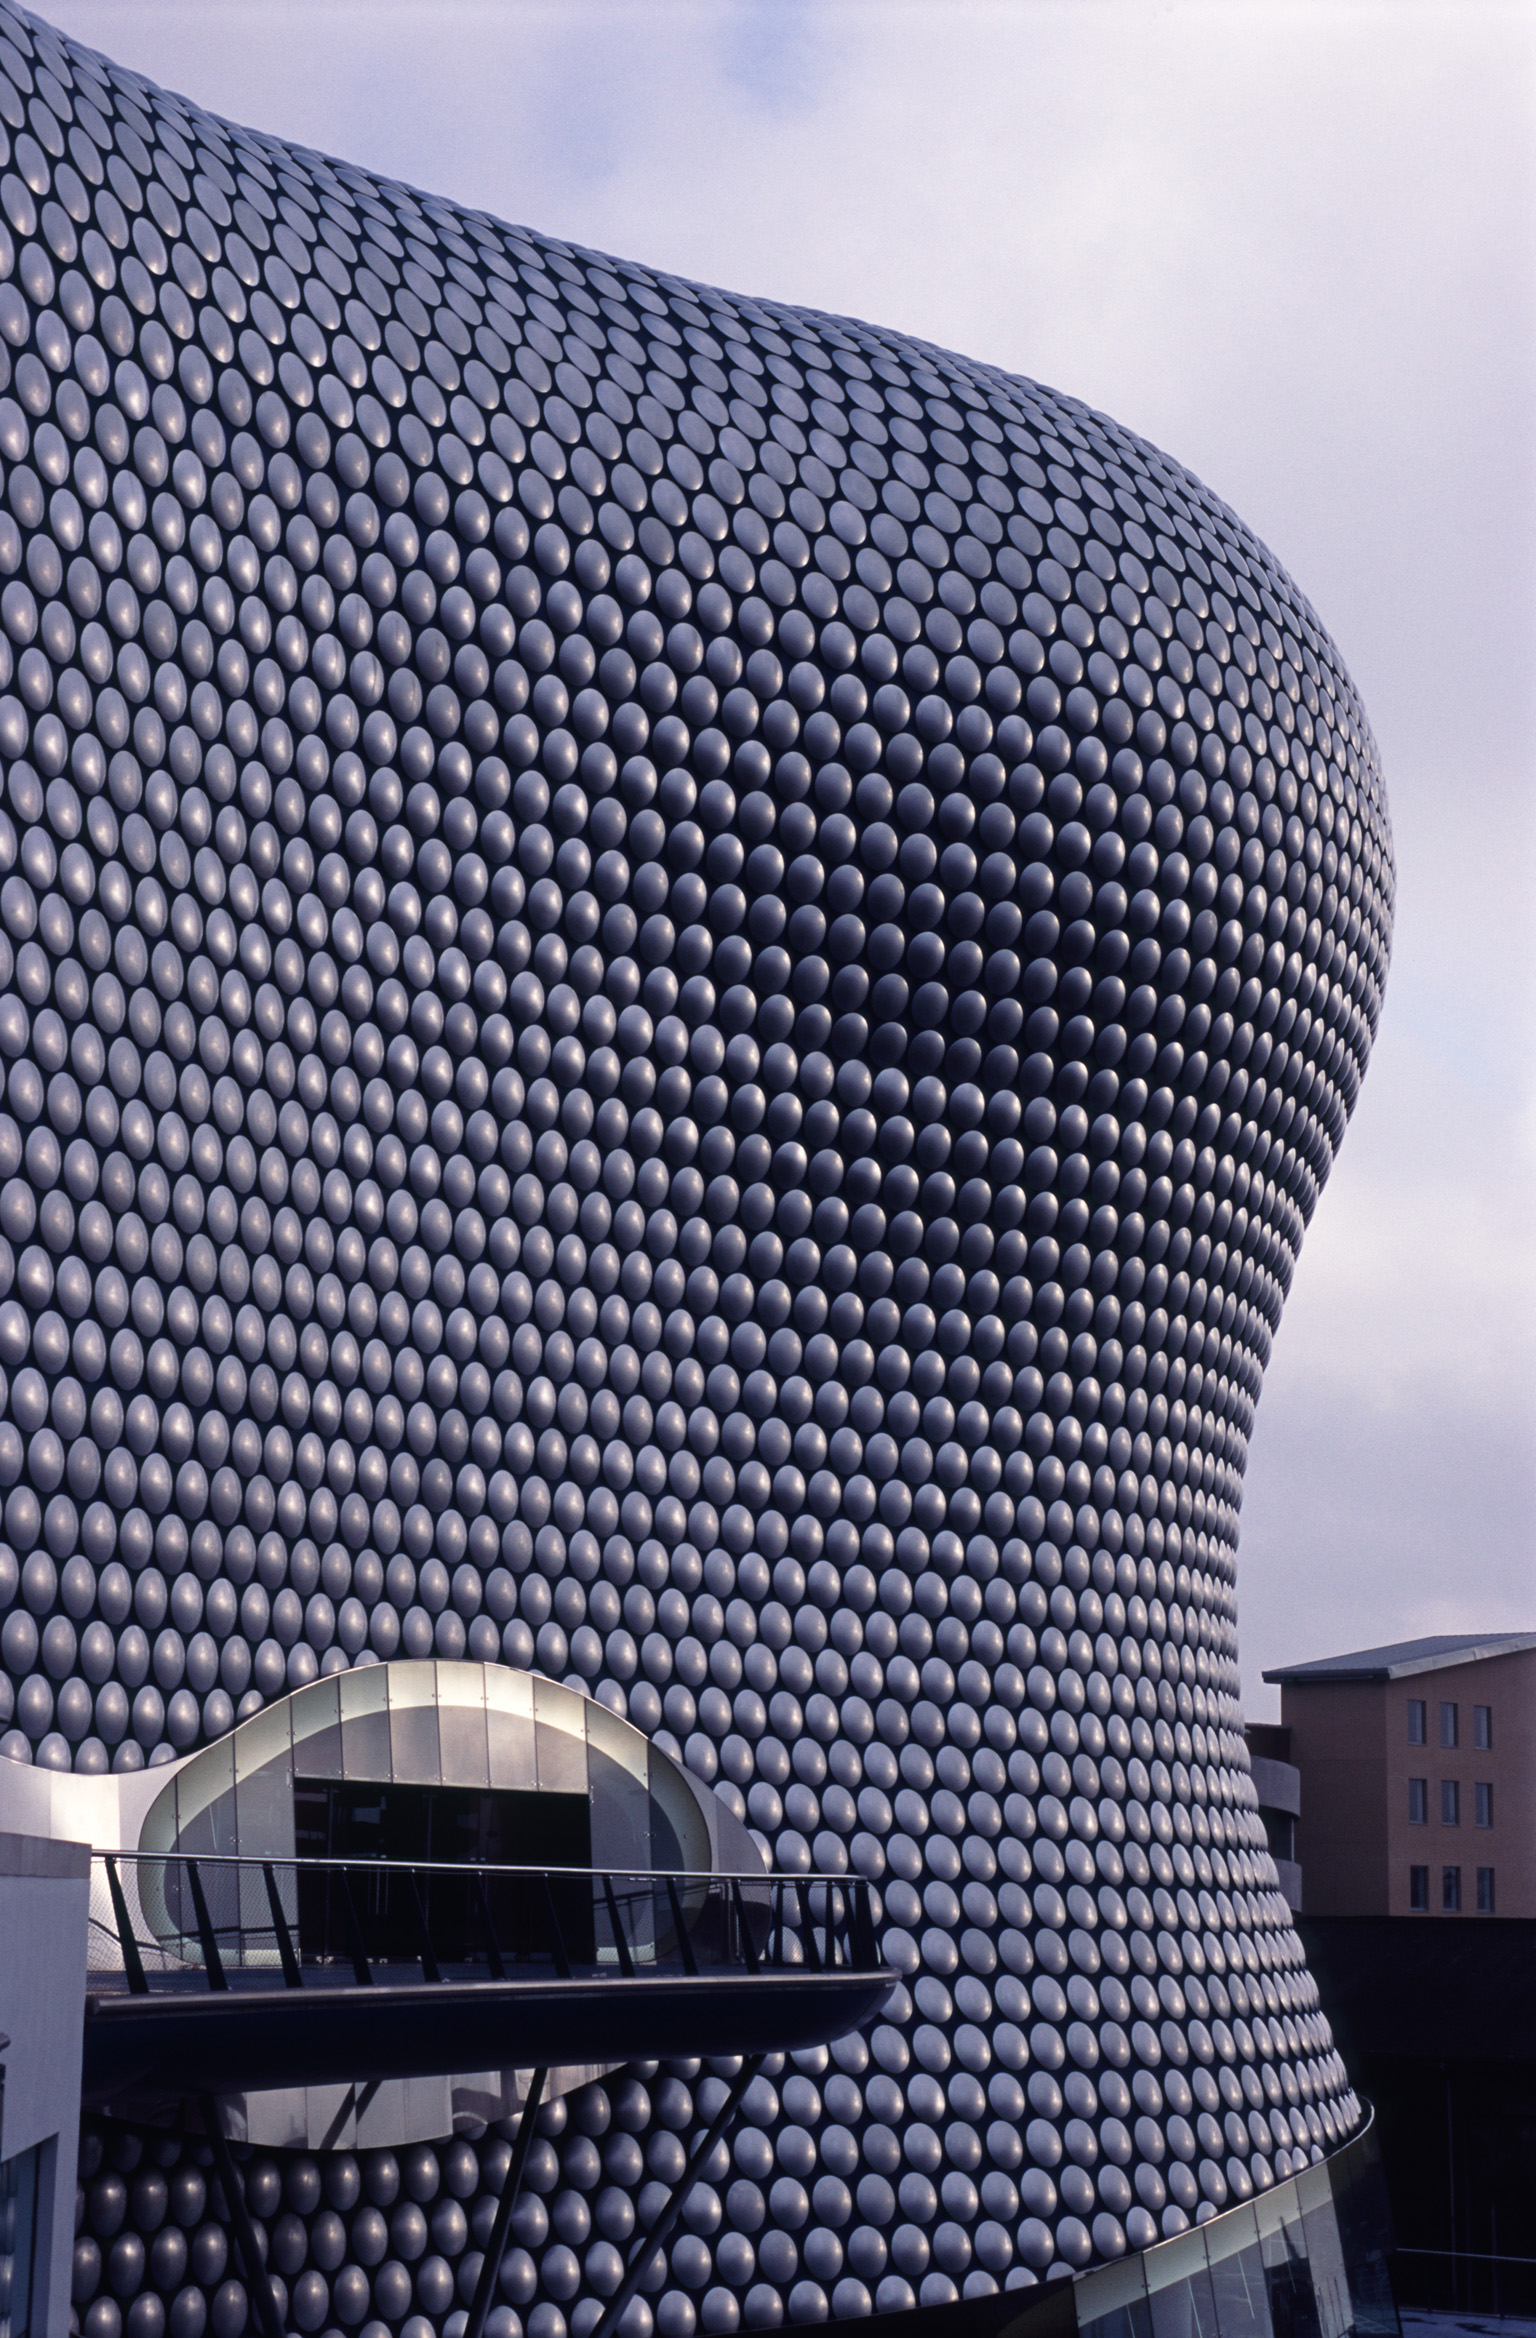 Exterior facade of the Bullring Shopping Centre with its modern curved architectural design and entrance, Birmingham, UK